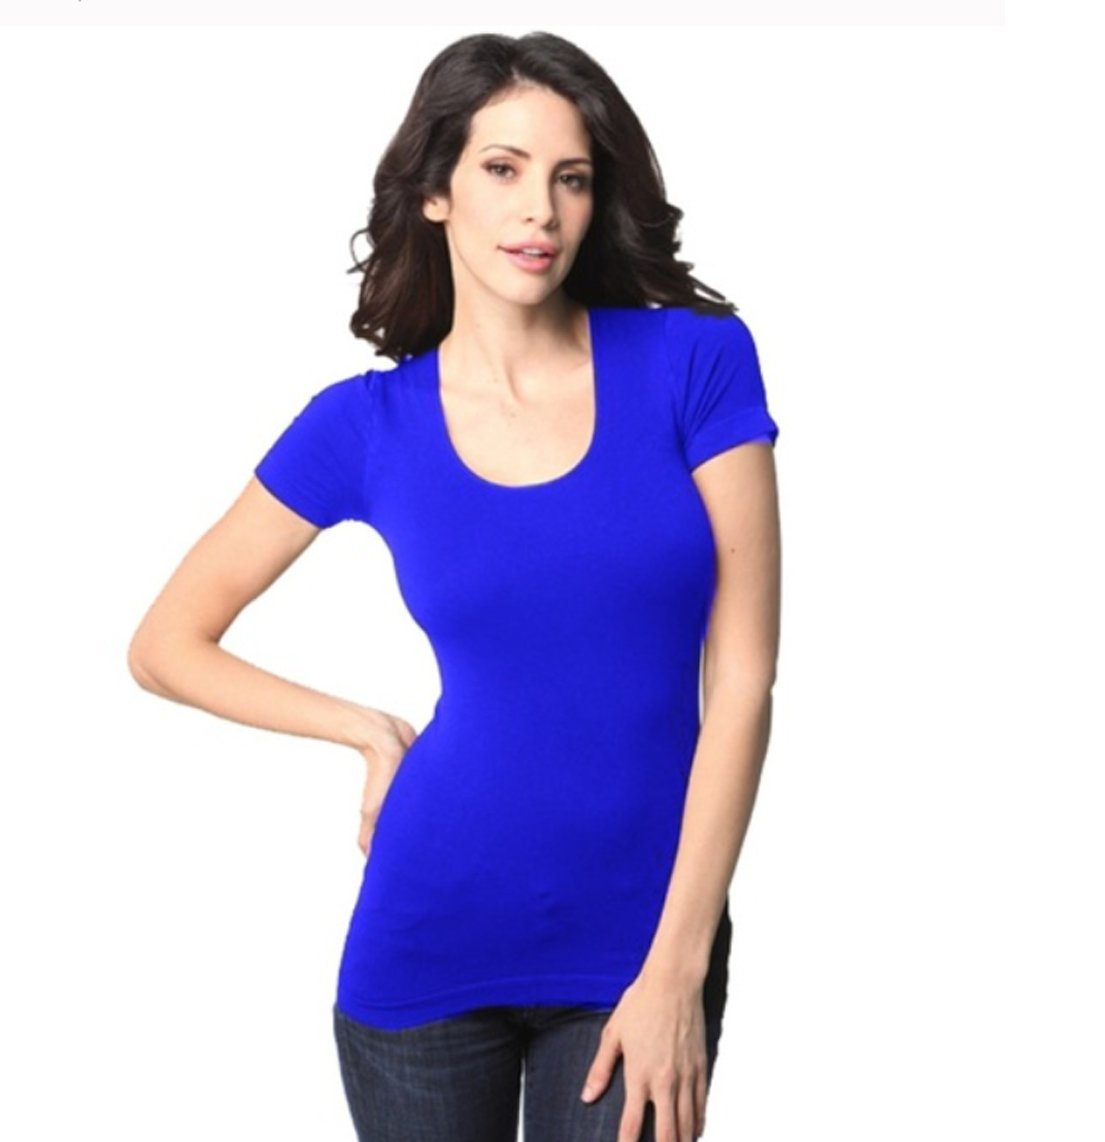 Tees by Tina Women's Seamless Maternity - Non Maternity Everyday Short Sleeve U-Neck Top (Cornflower Blue, One Size)